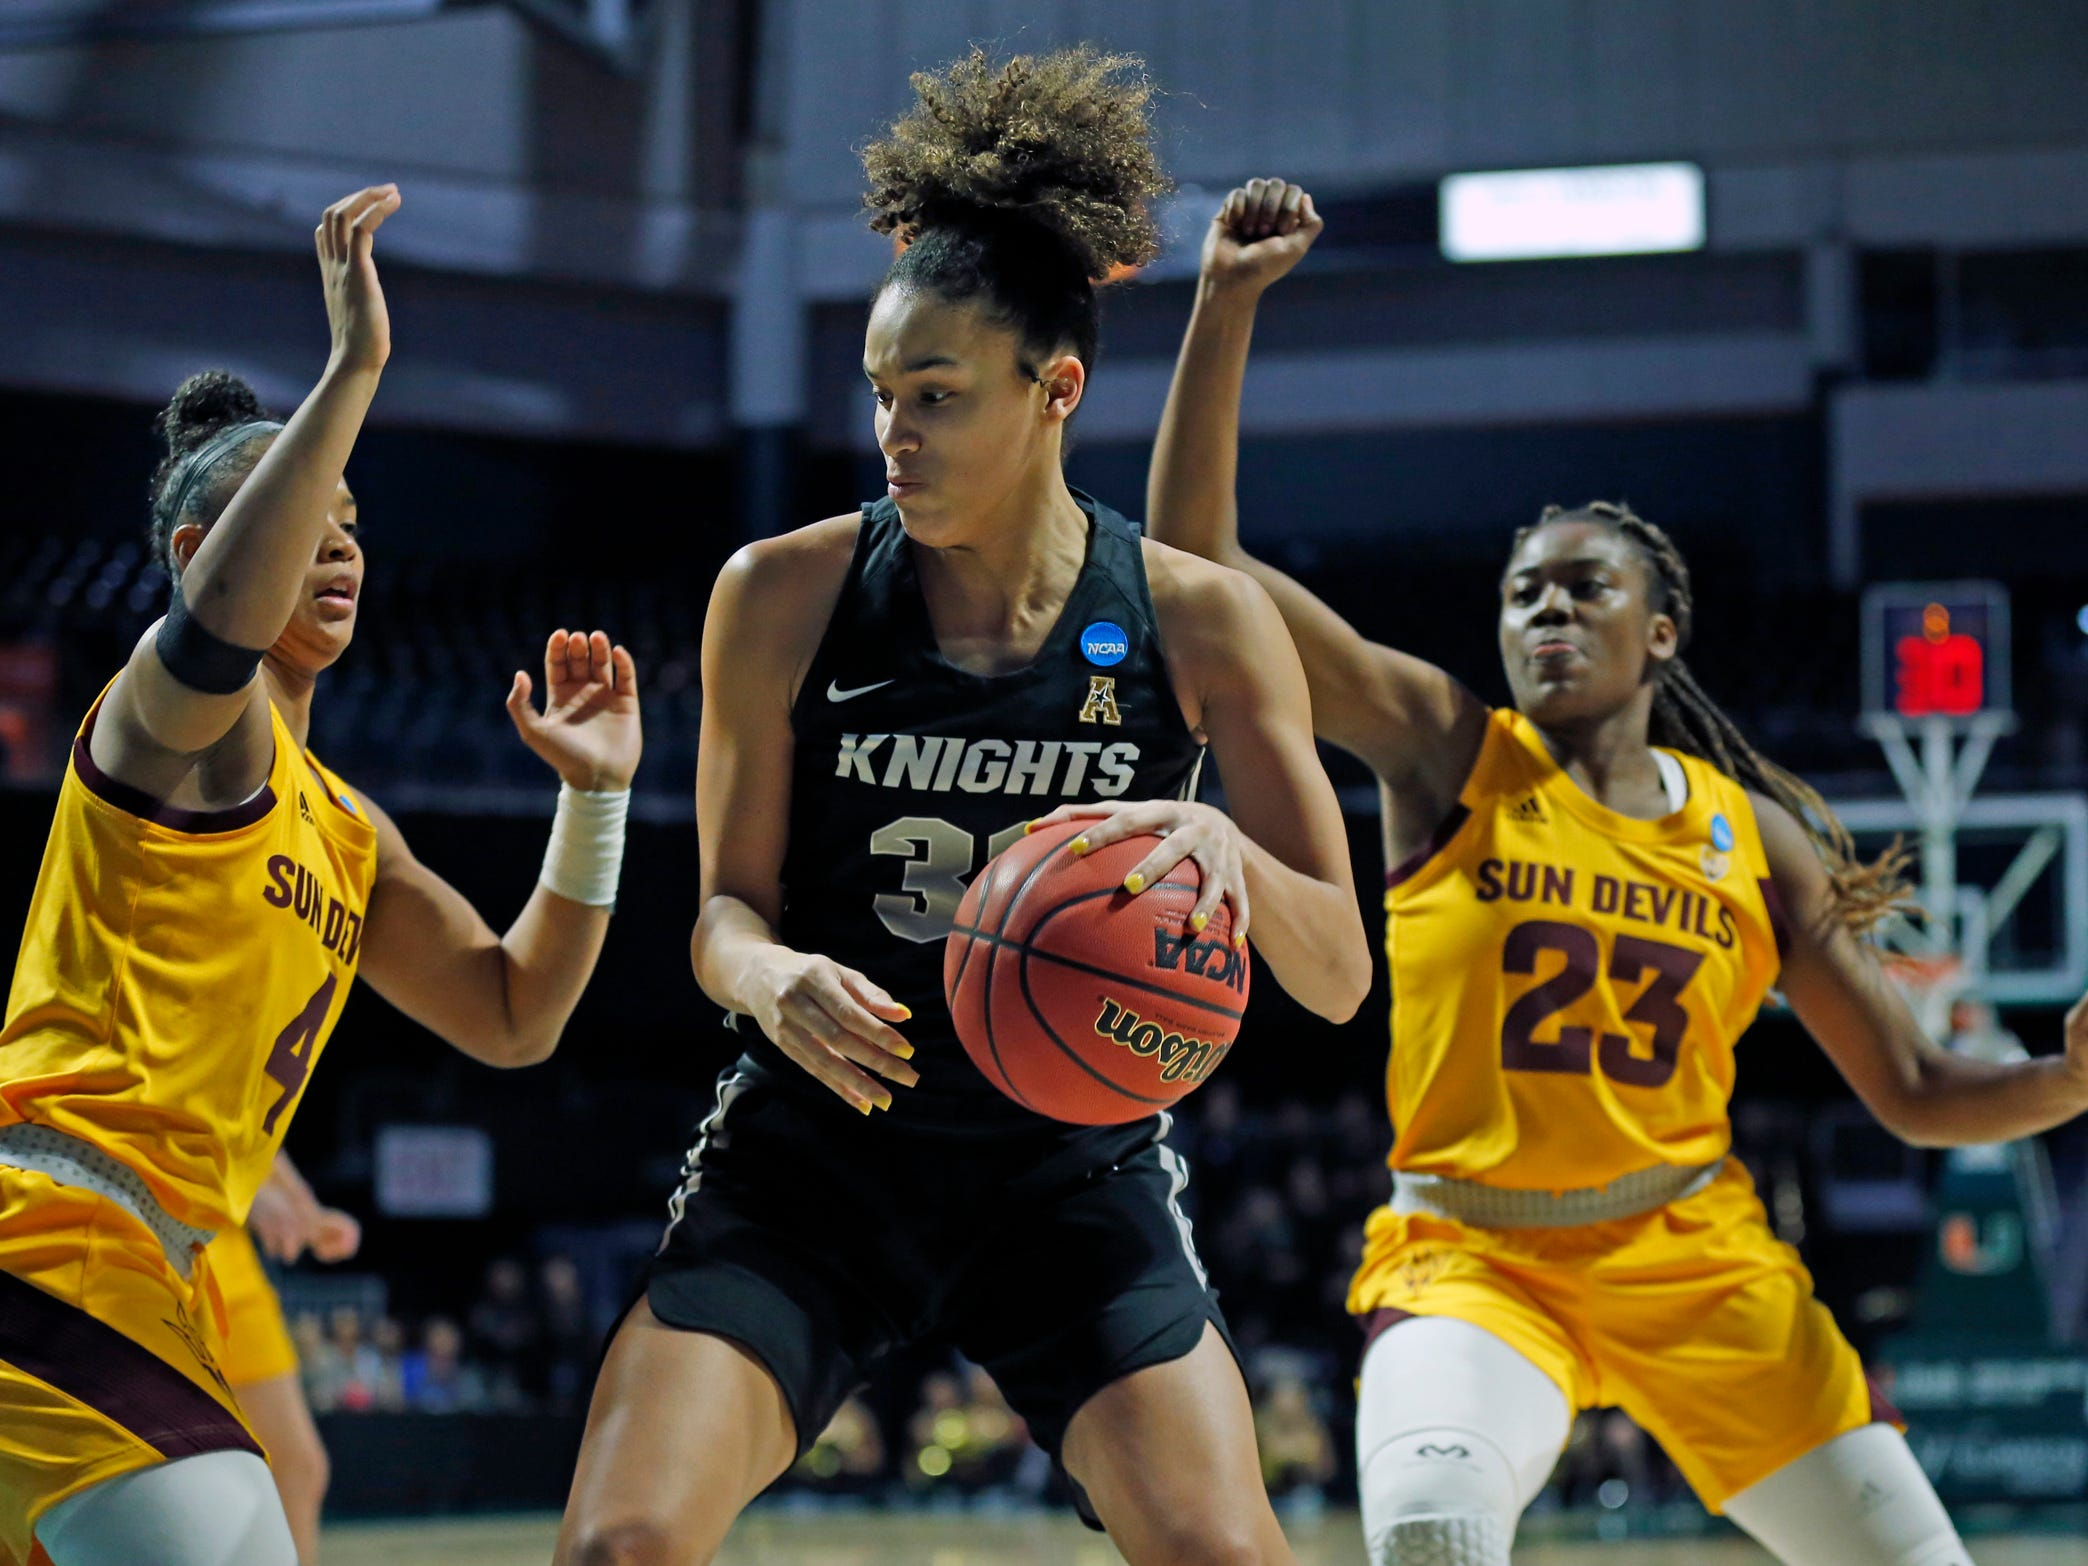 UCF guard Diamond Battles (3) drives the ball in between Arizona State guard Iris Mbulito (23) and Arizona State guard Kiara Russell (4), during a first round women's college basketball game in the NCAA Tournament in Coral Gables, Fla., Friday, March 22, 2019. (Al Diaz/Miami Herald via AP)